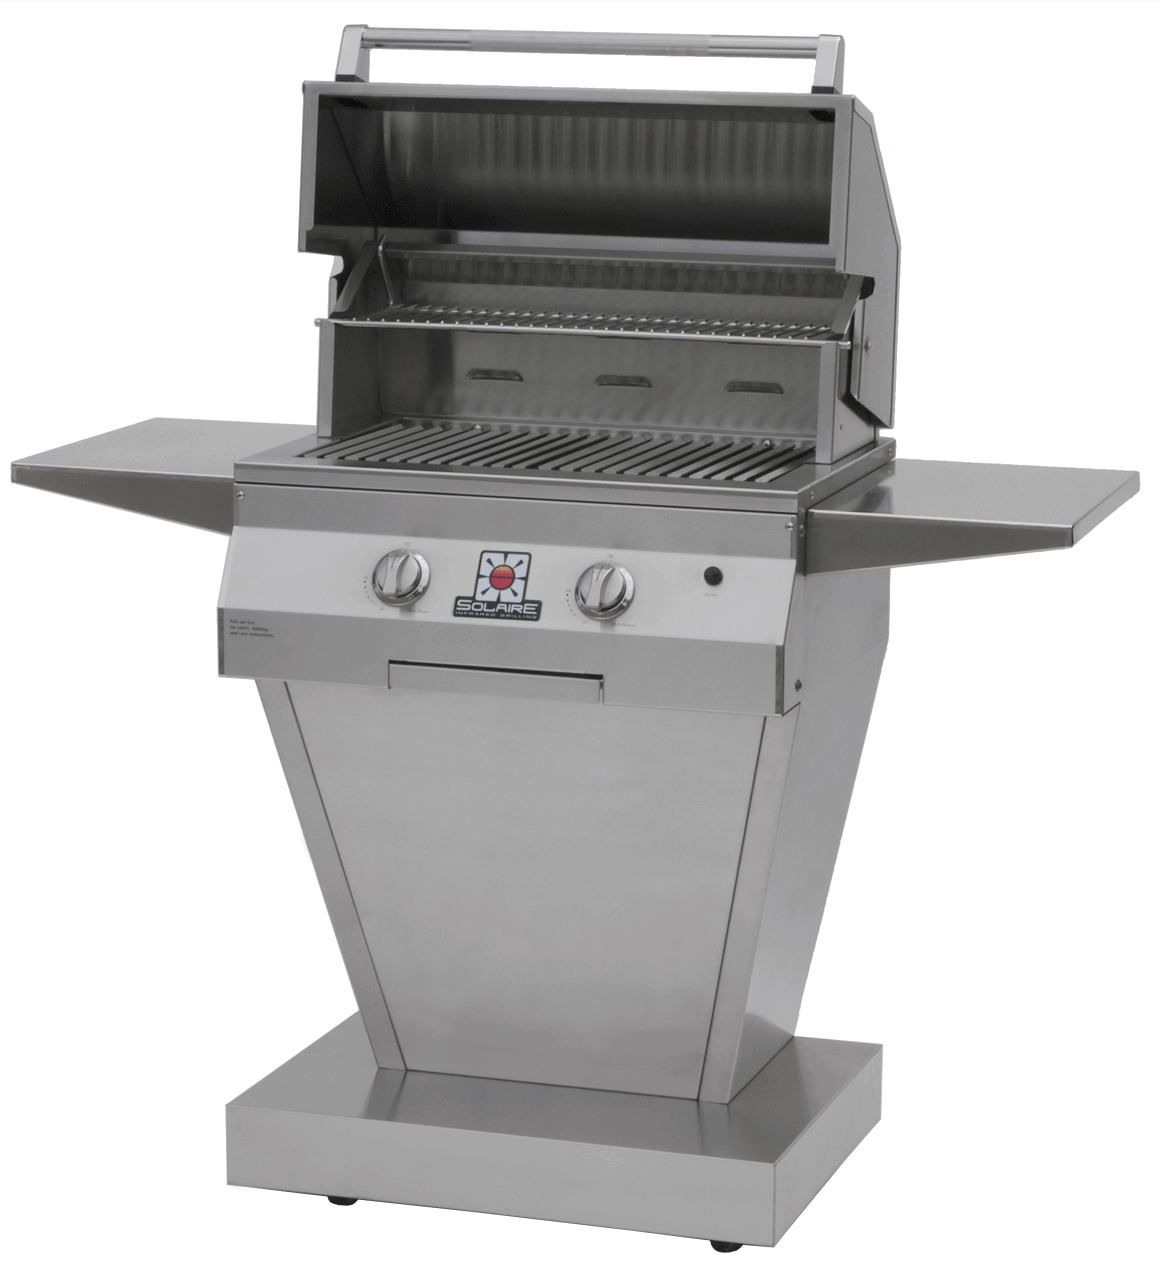 Solaire 27 Inch Grill, Angular Pedestal, Front View